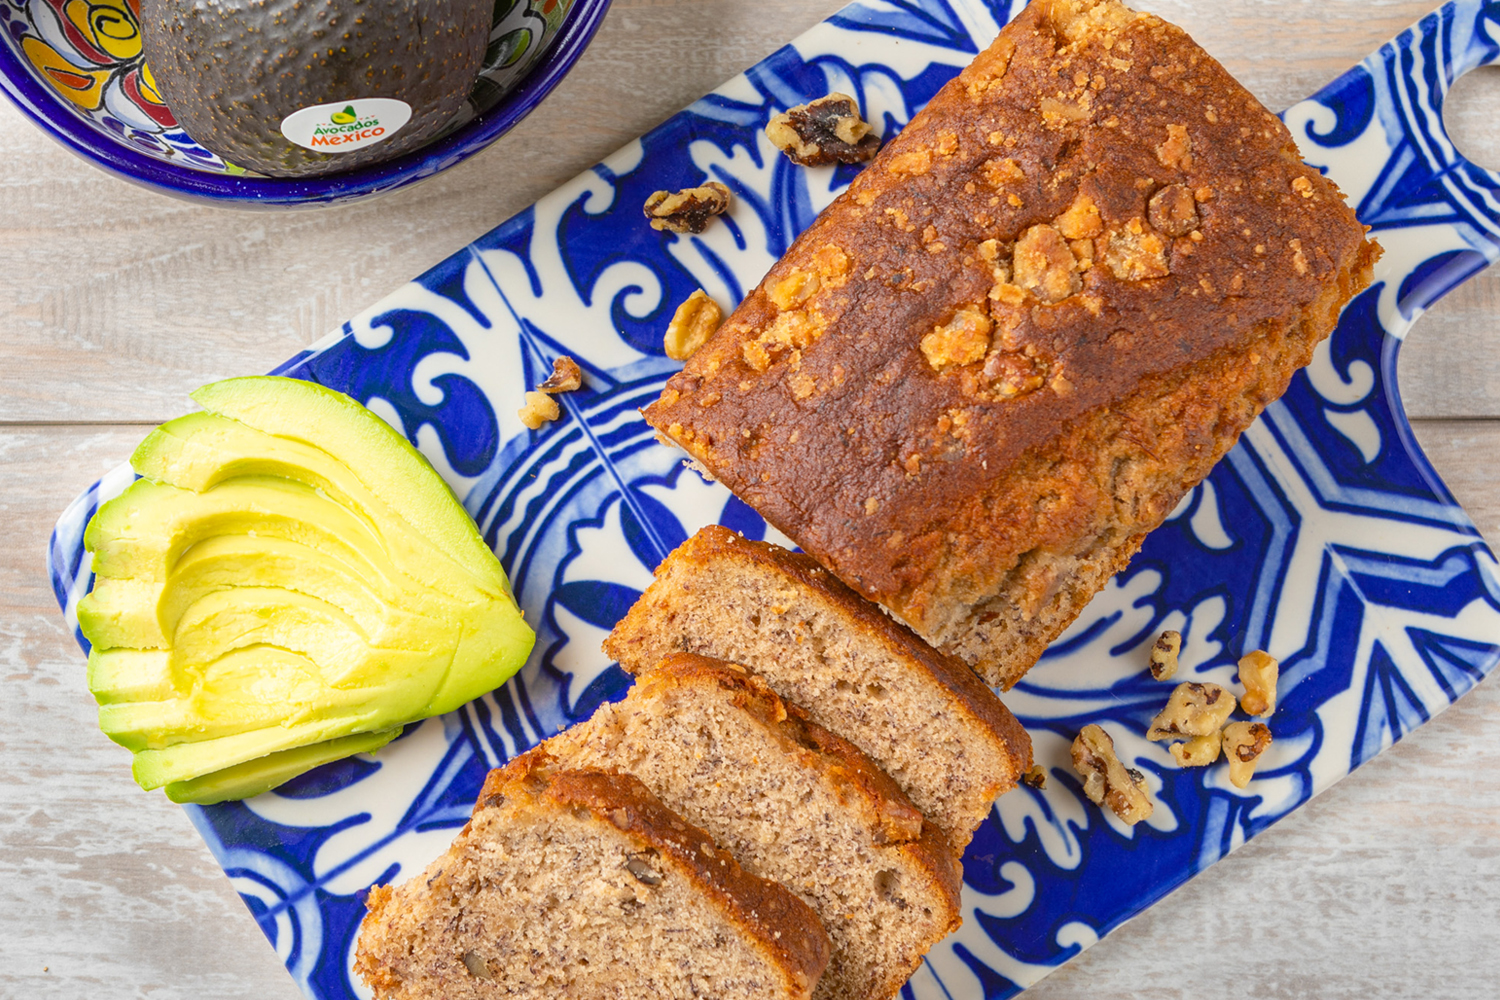 Gingerbread-Spiced Avocado Nut Bread, photo by Avocados From Mexico